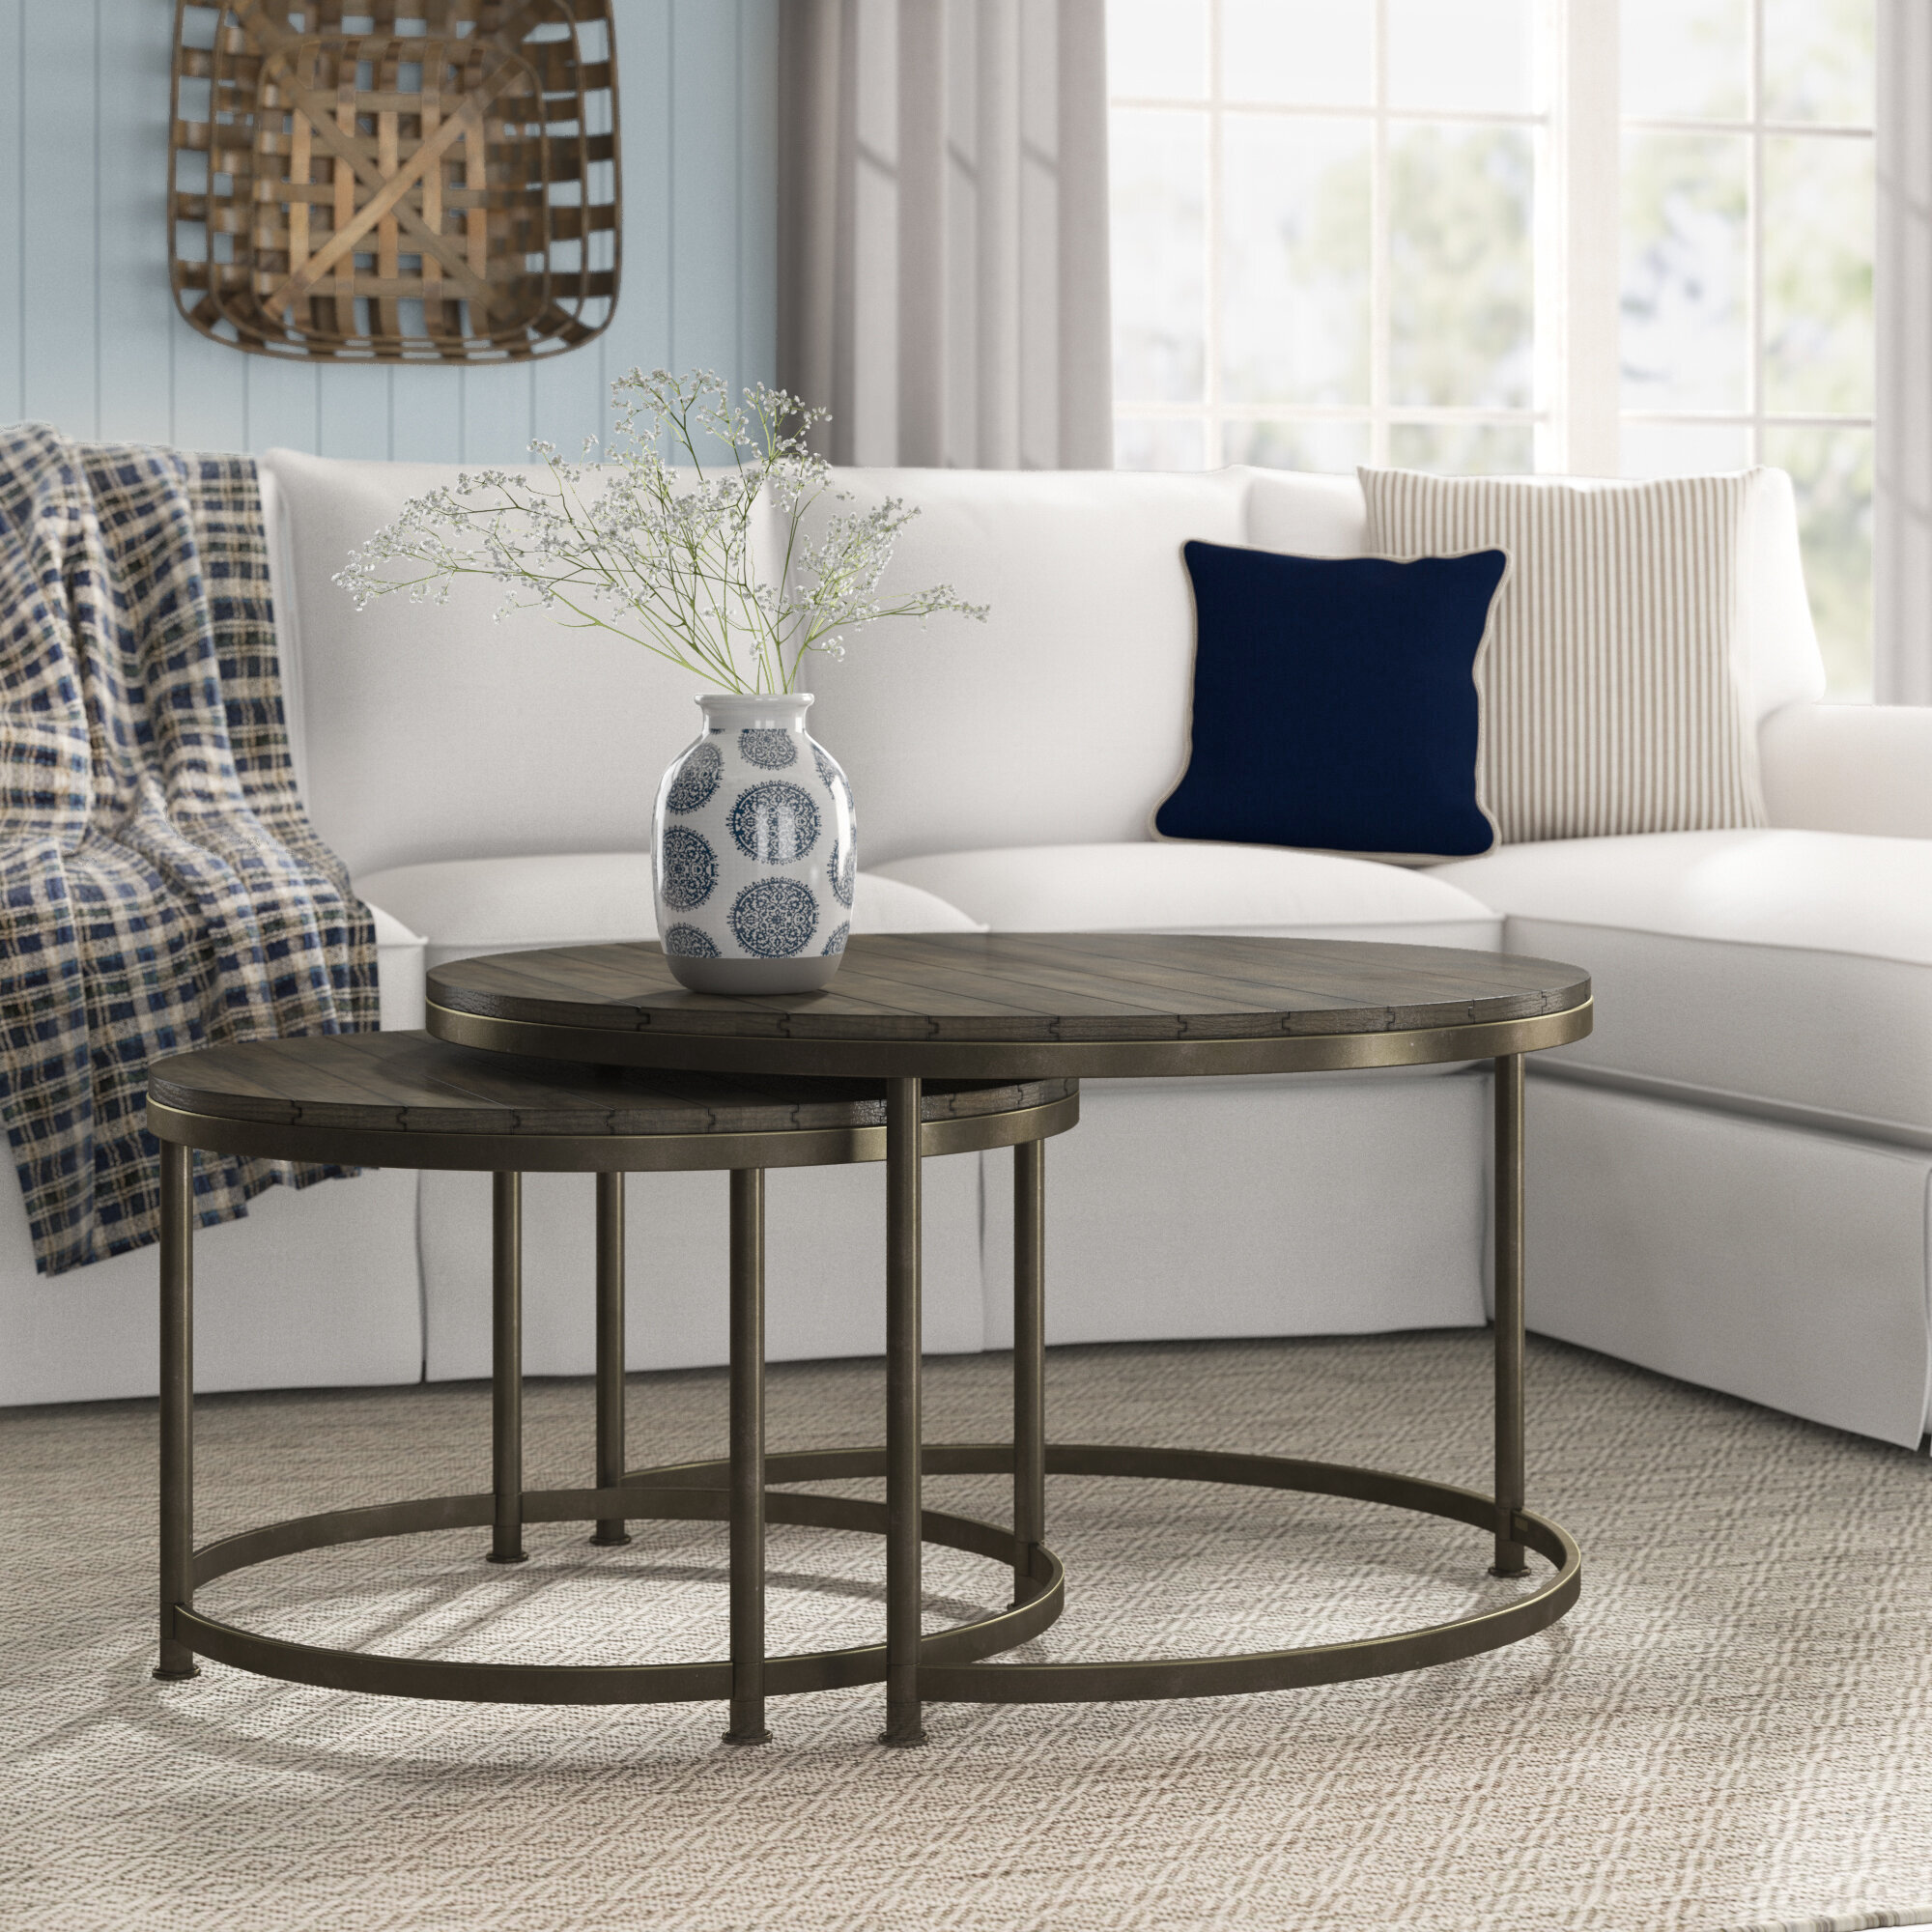 17 Stories Fricis 2 Coffee Table Sets Reviews Wayfair